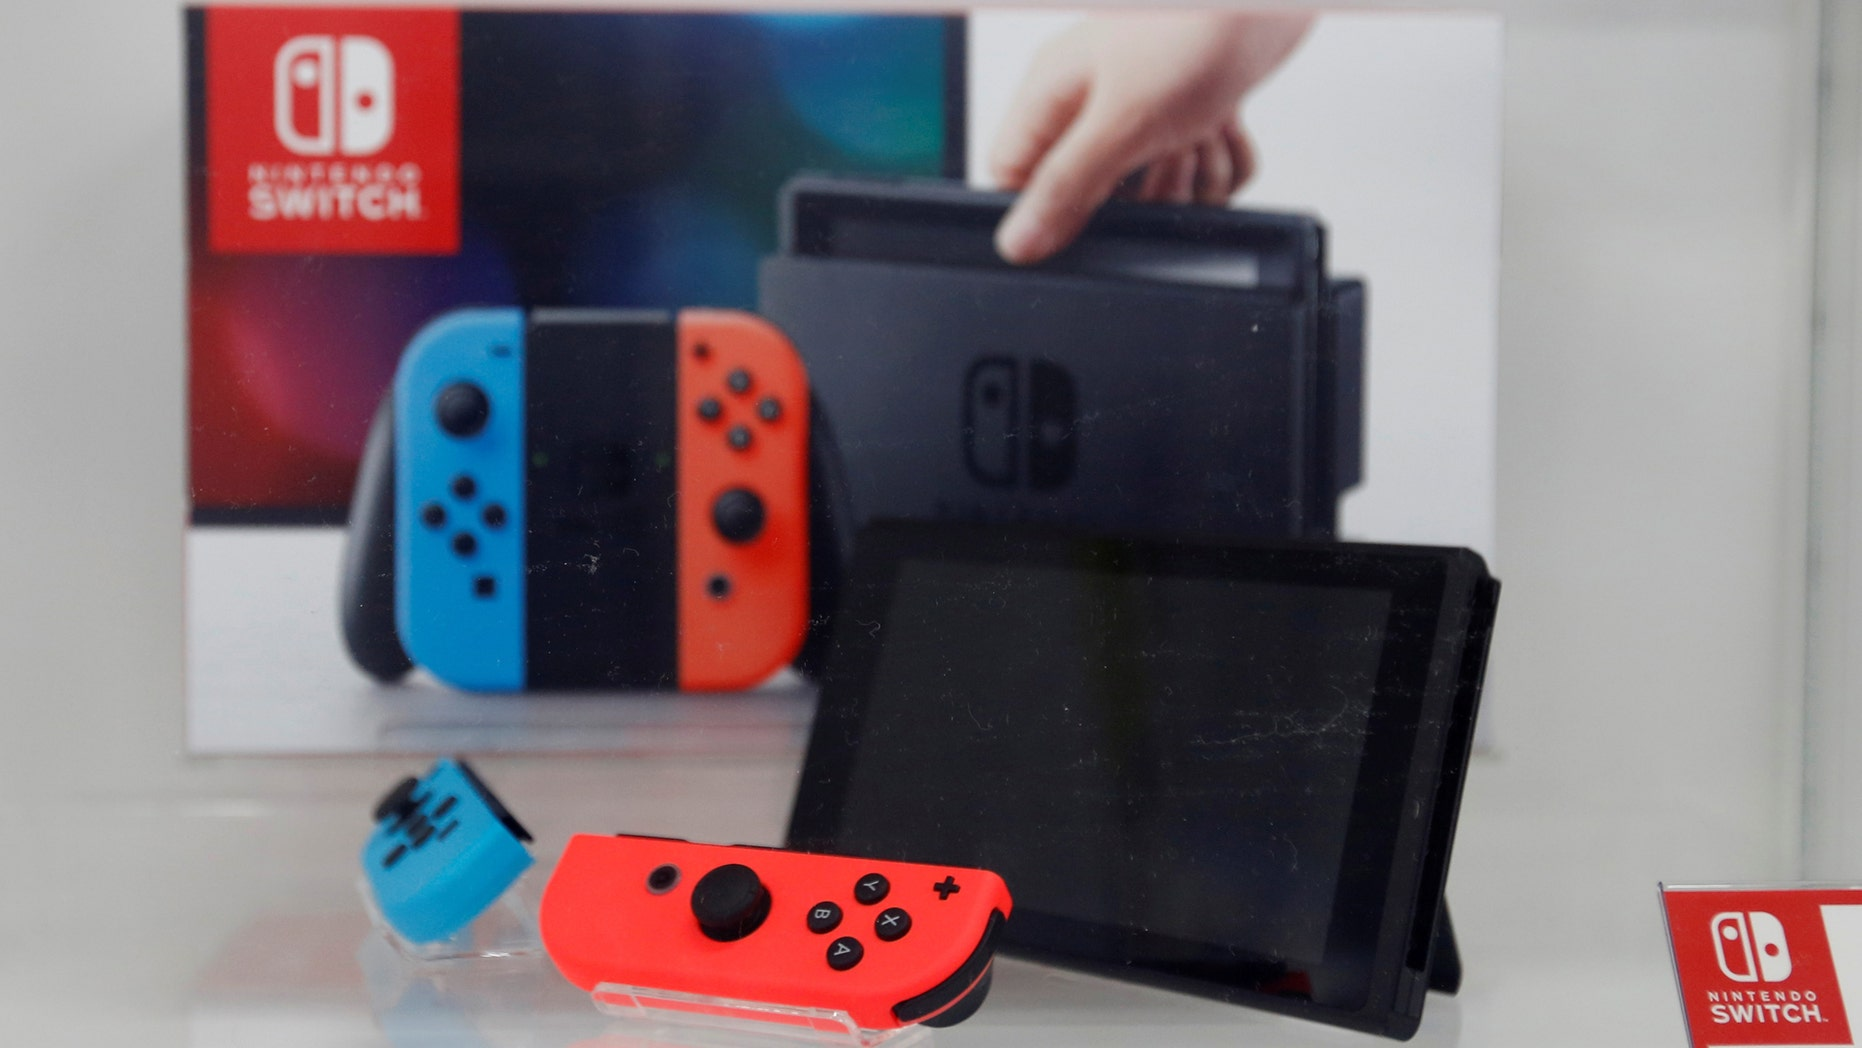 Westlake Legal Group switch Smaller Nintendo Switch launching this fall, report says PCmag fox-news/tech/topics/video-games fnc/tech fnc article 4b76fa0a-0bcb-5c37-b23b-525490bd7ae5